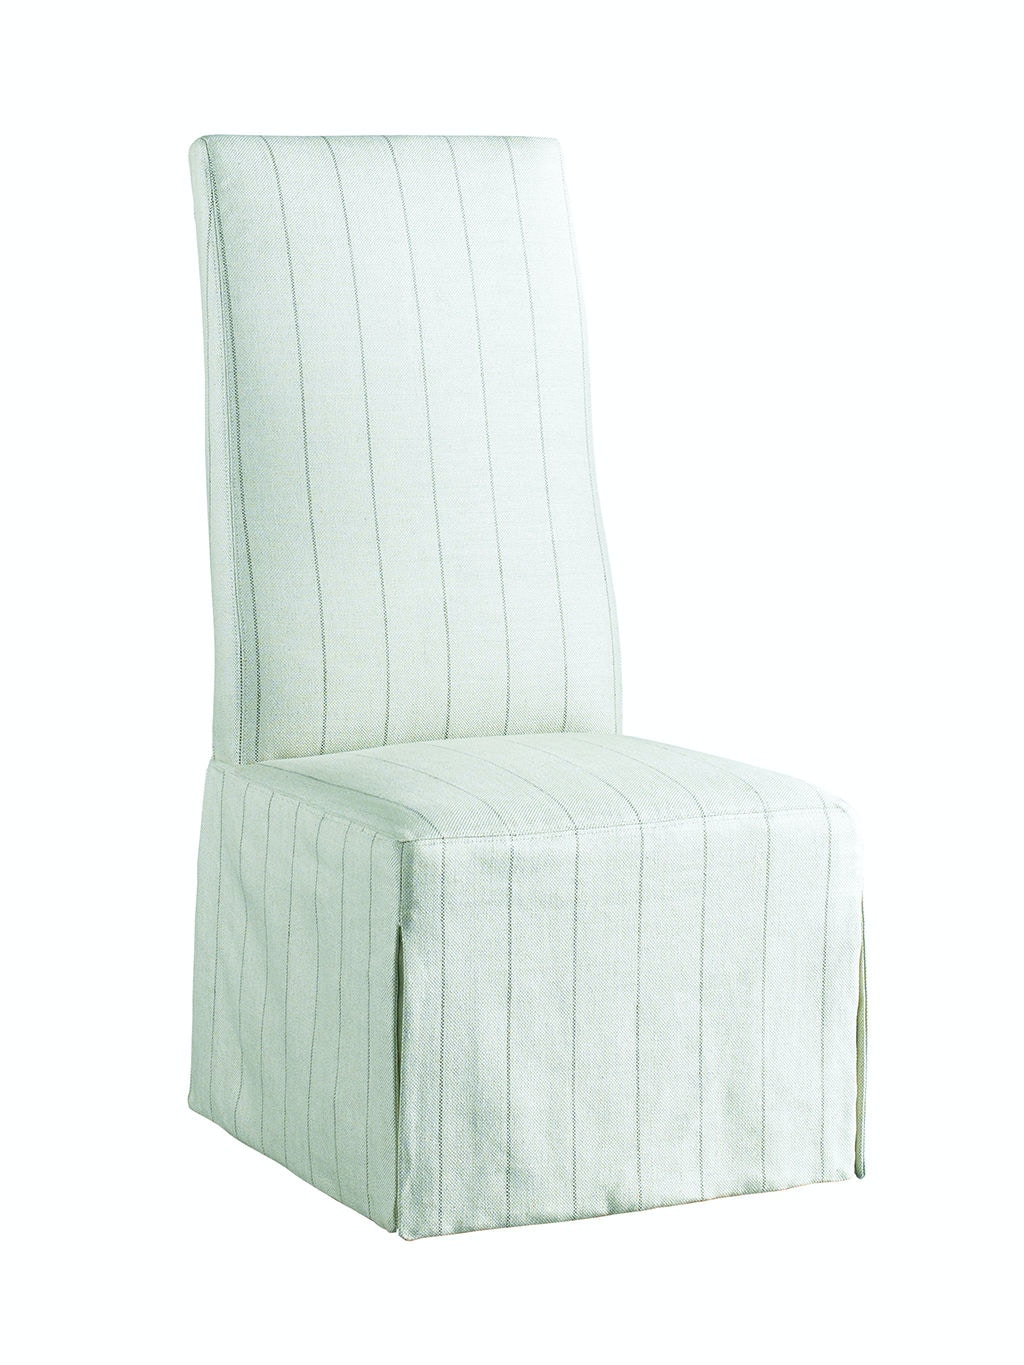 Lillian August for Hickory White Dining Room Royale Dining Chair LA3115AC - Noel Furniture ...